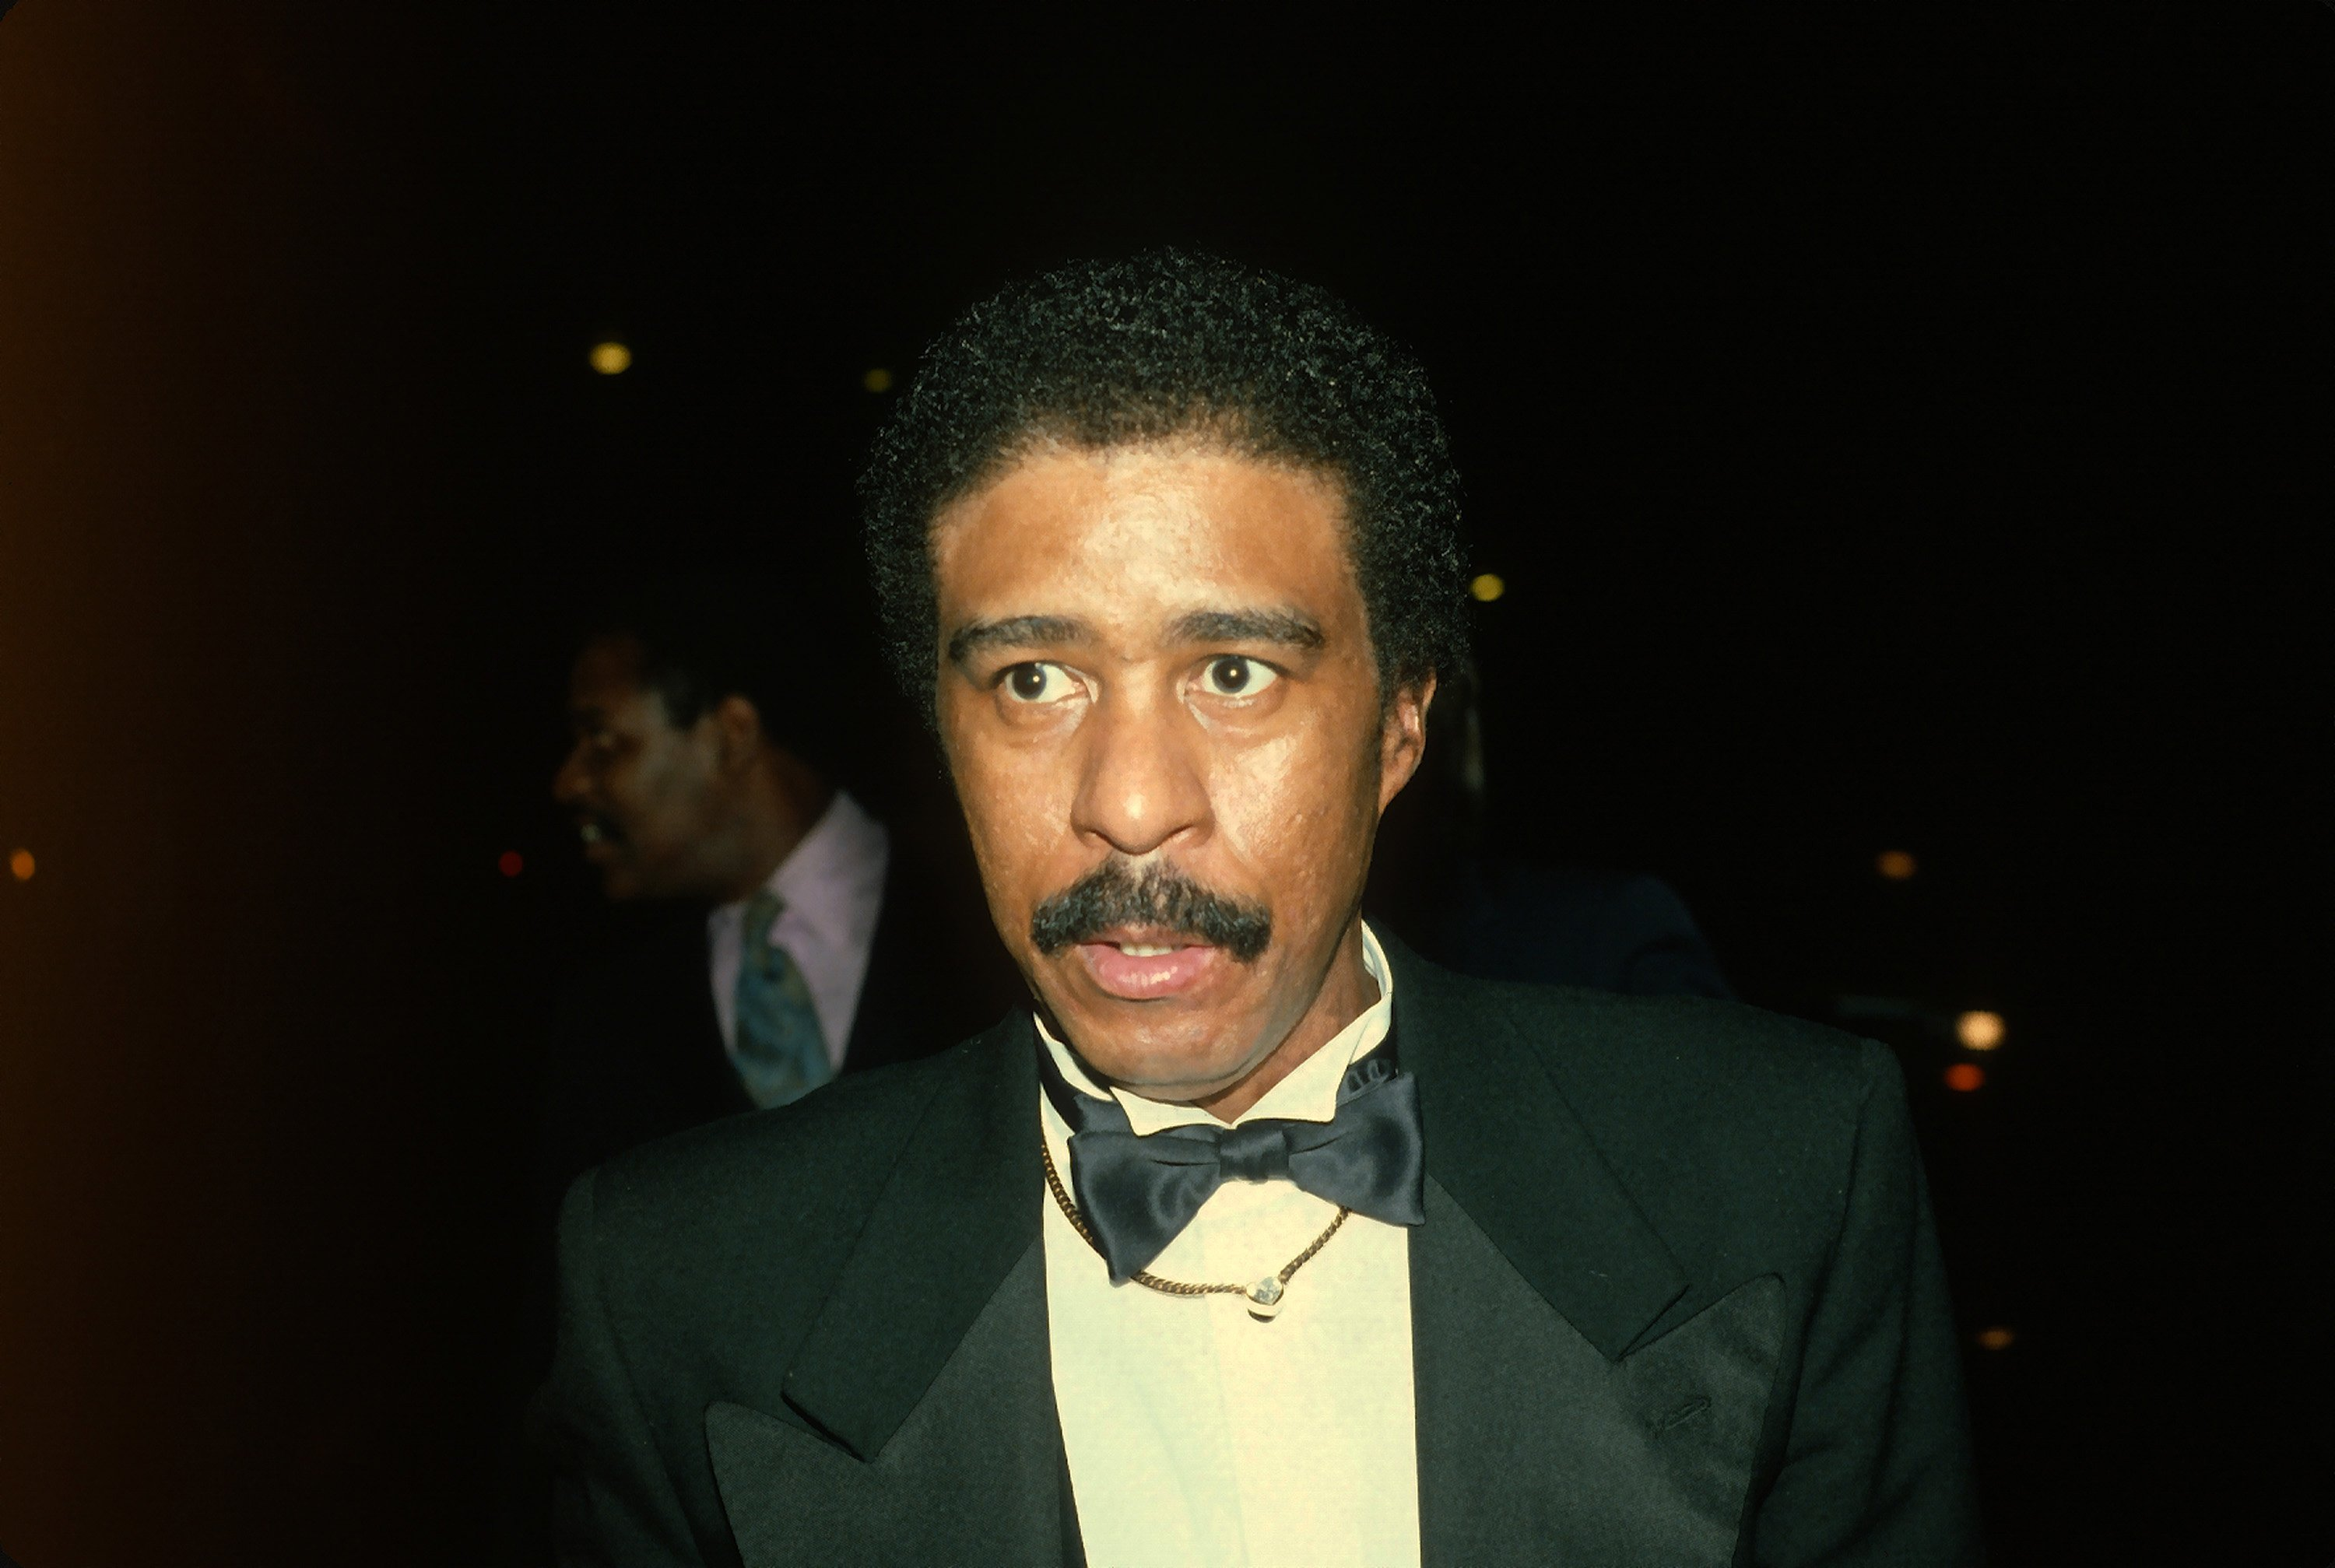 Richard Pryor at the  'Night of 100 Stars' event on March 8, 1982 in New York City.